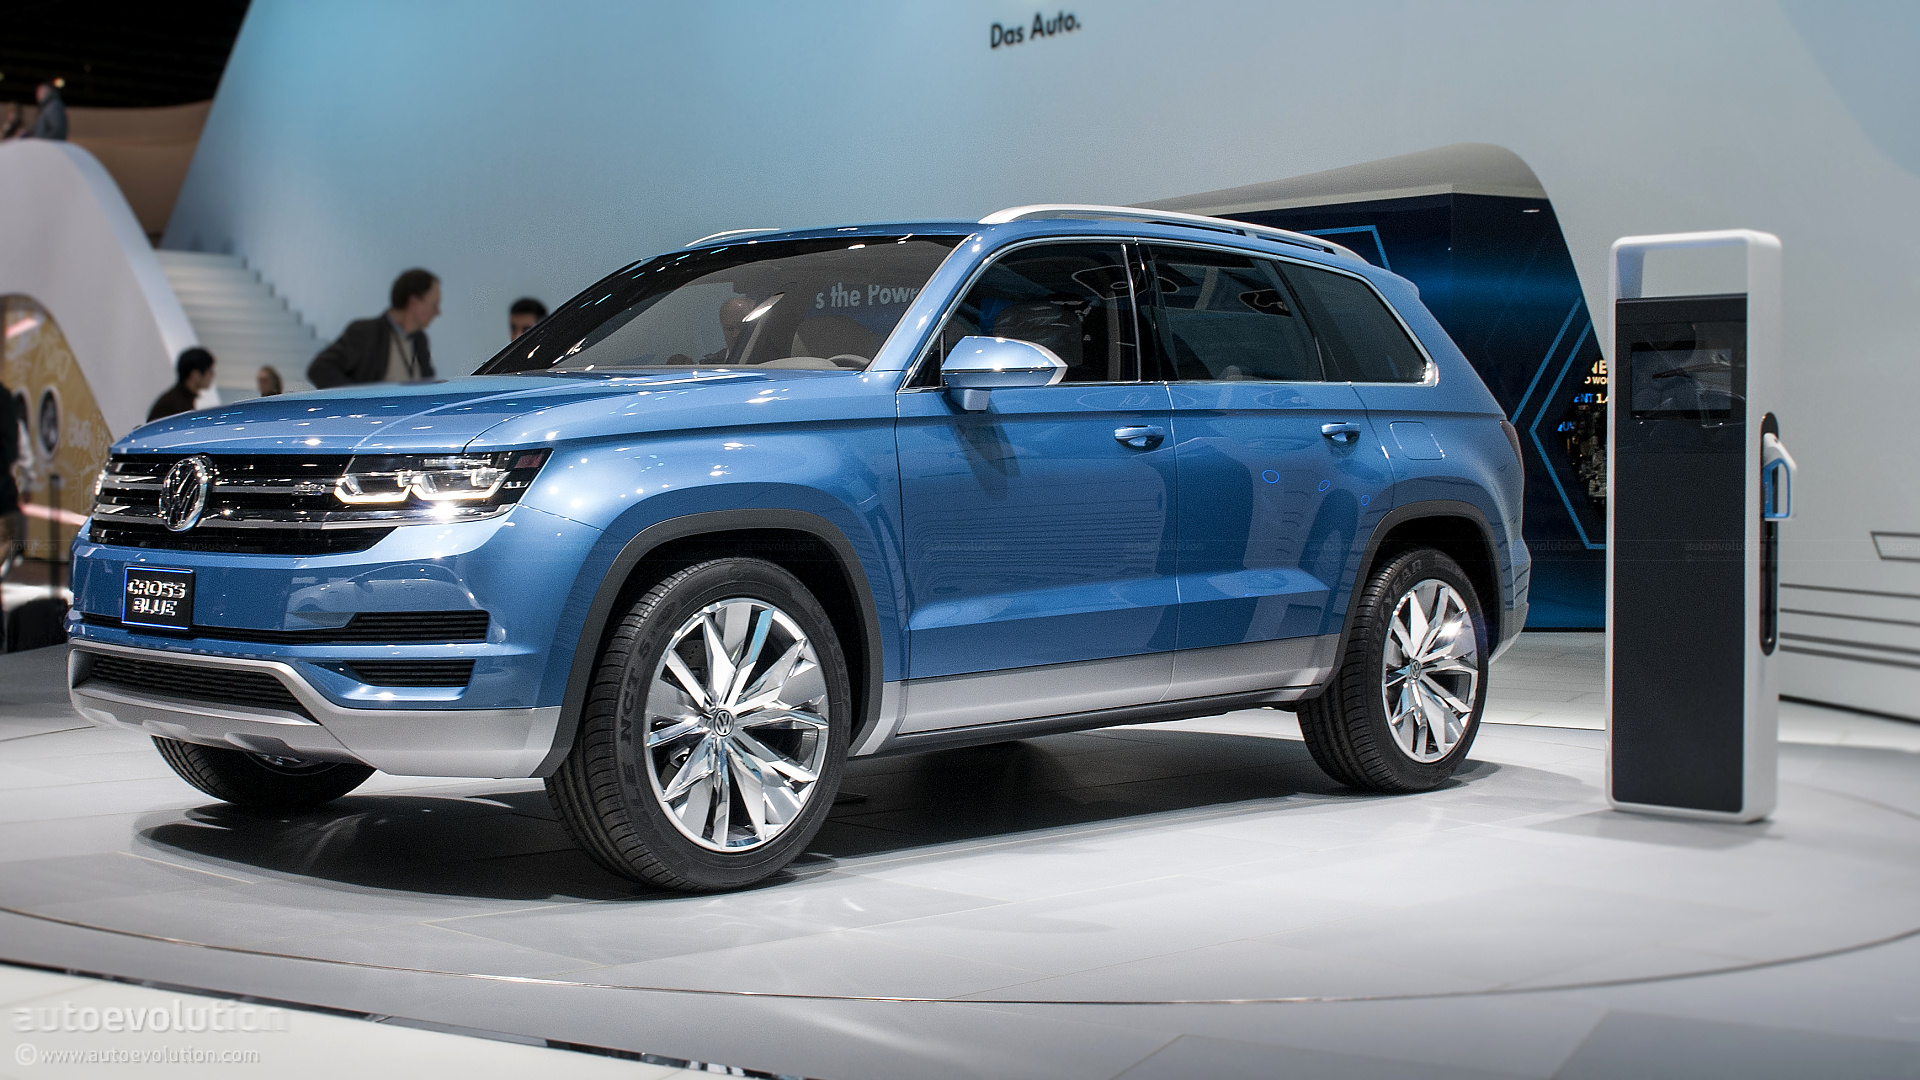 2013 NAIAS: Volkswagen CrossBlue Concept [Live Photos] - autoevolution